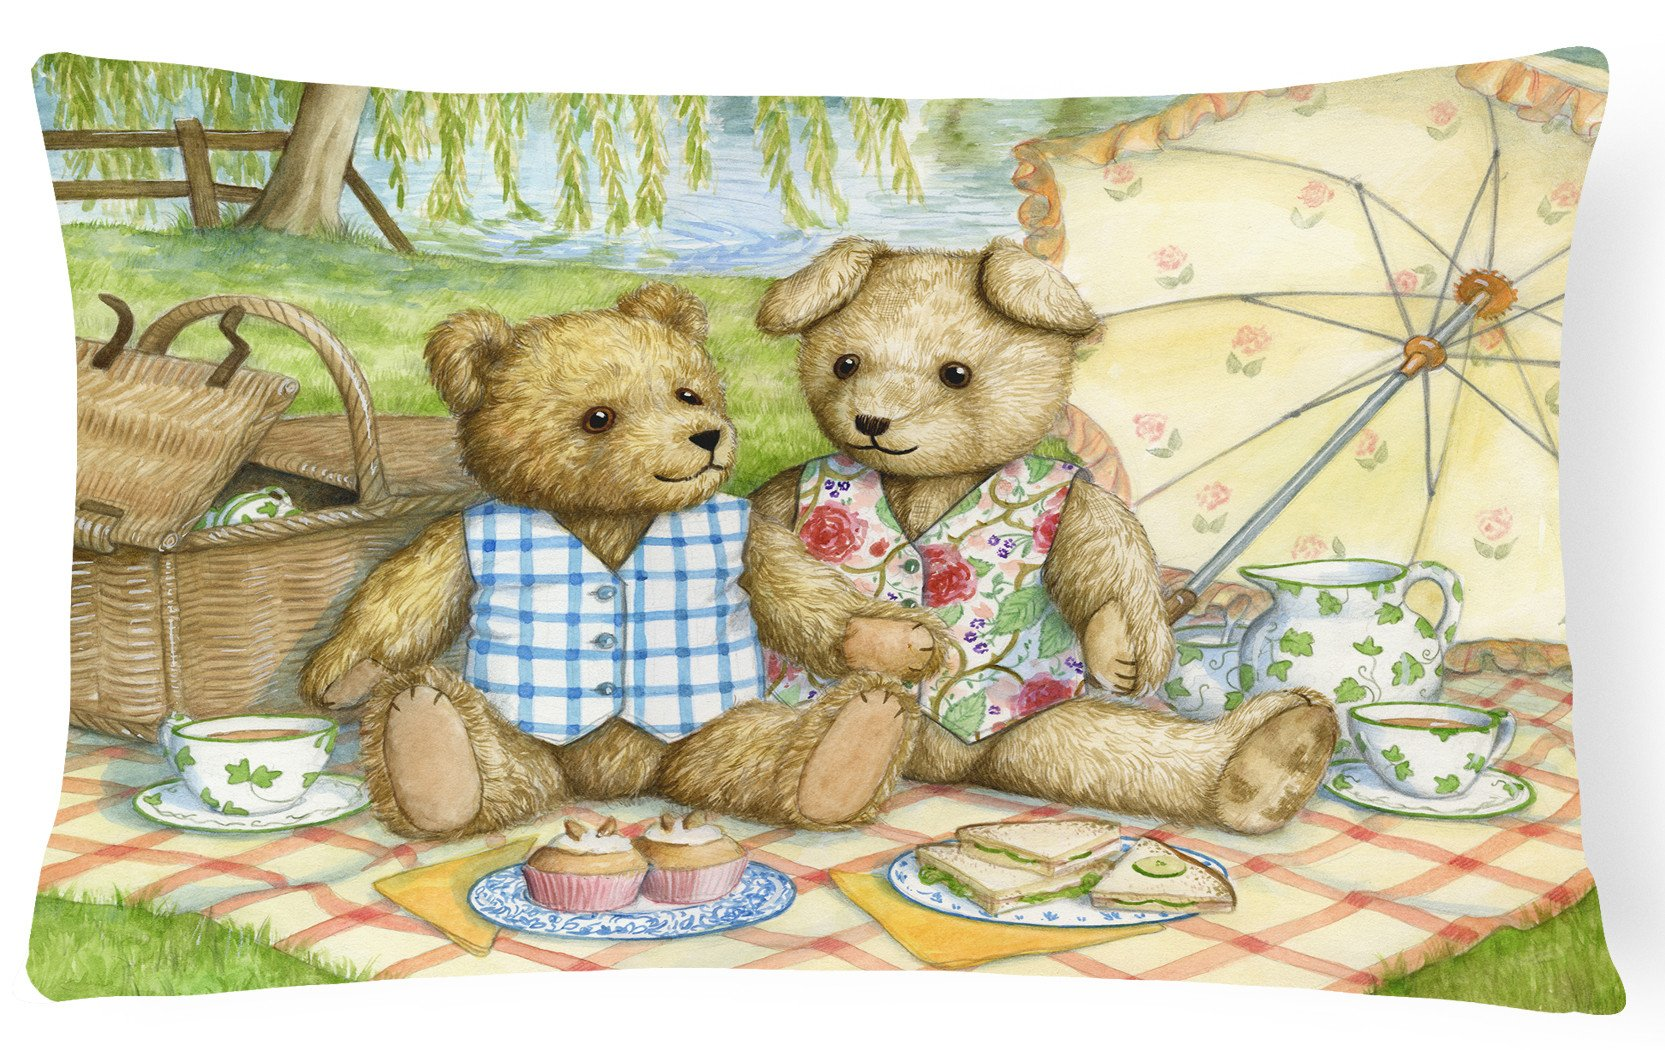 Summertime Teddy Bears Picnic Fabric Decorative Pillow CDCO0308PW1216 by Caroline's Treasures